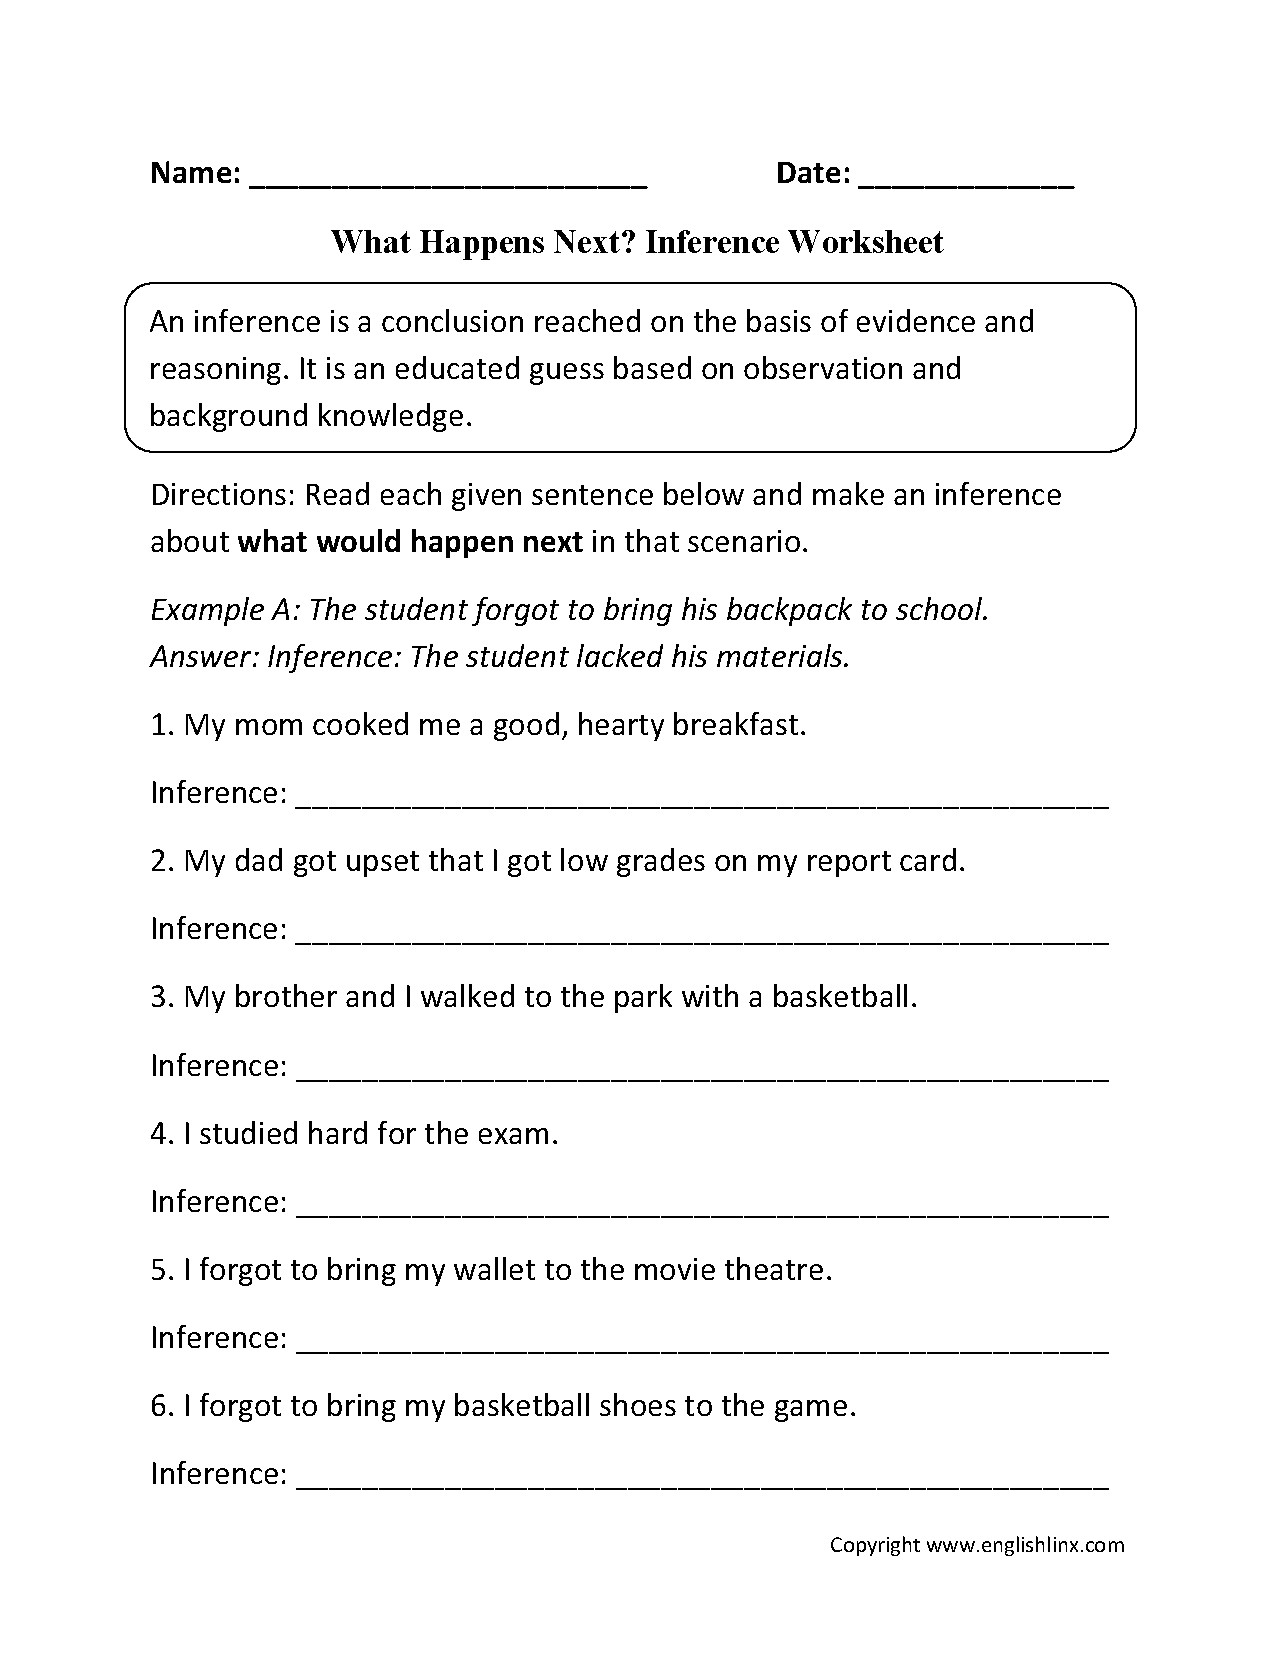 4th Grade Inferencing Worksheets Making Inferences Worksheets Grade 3